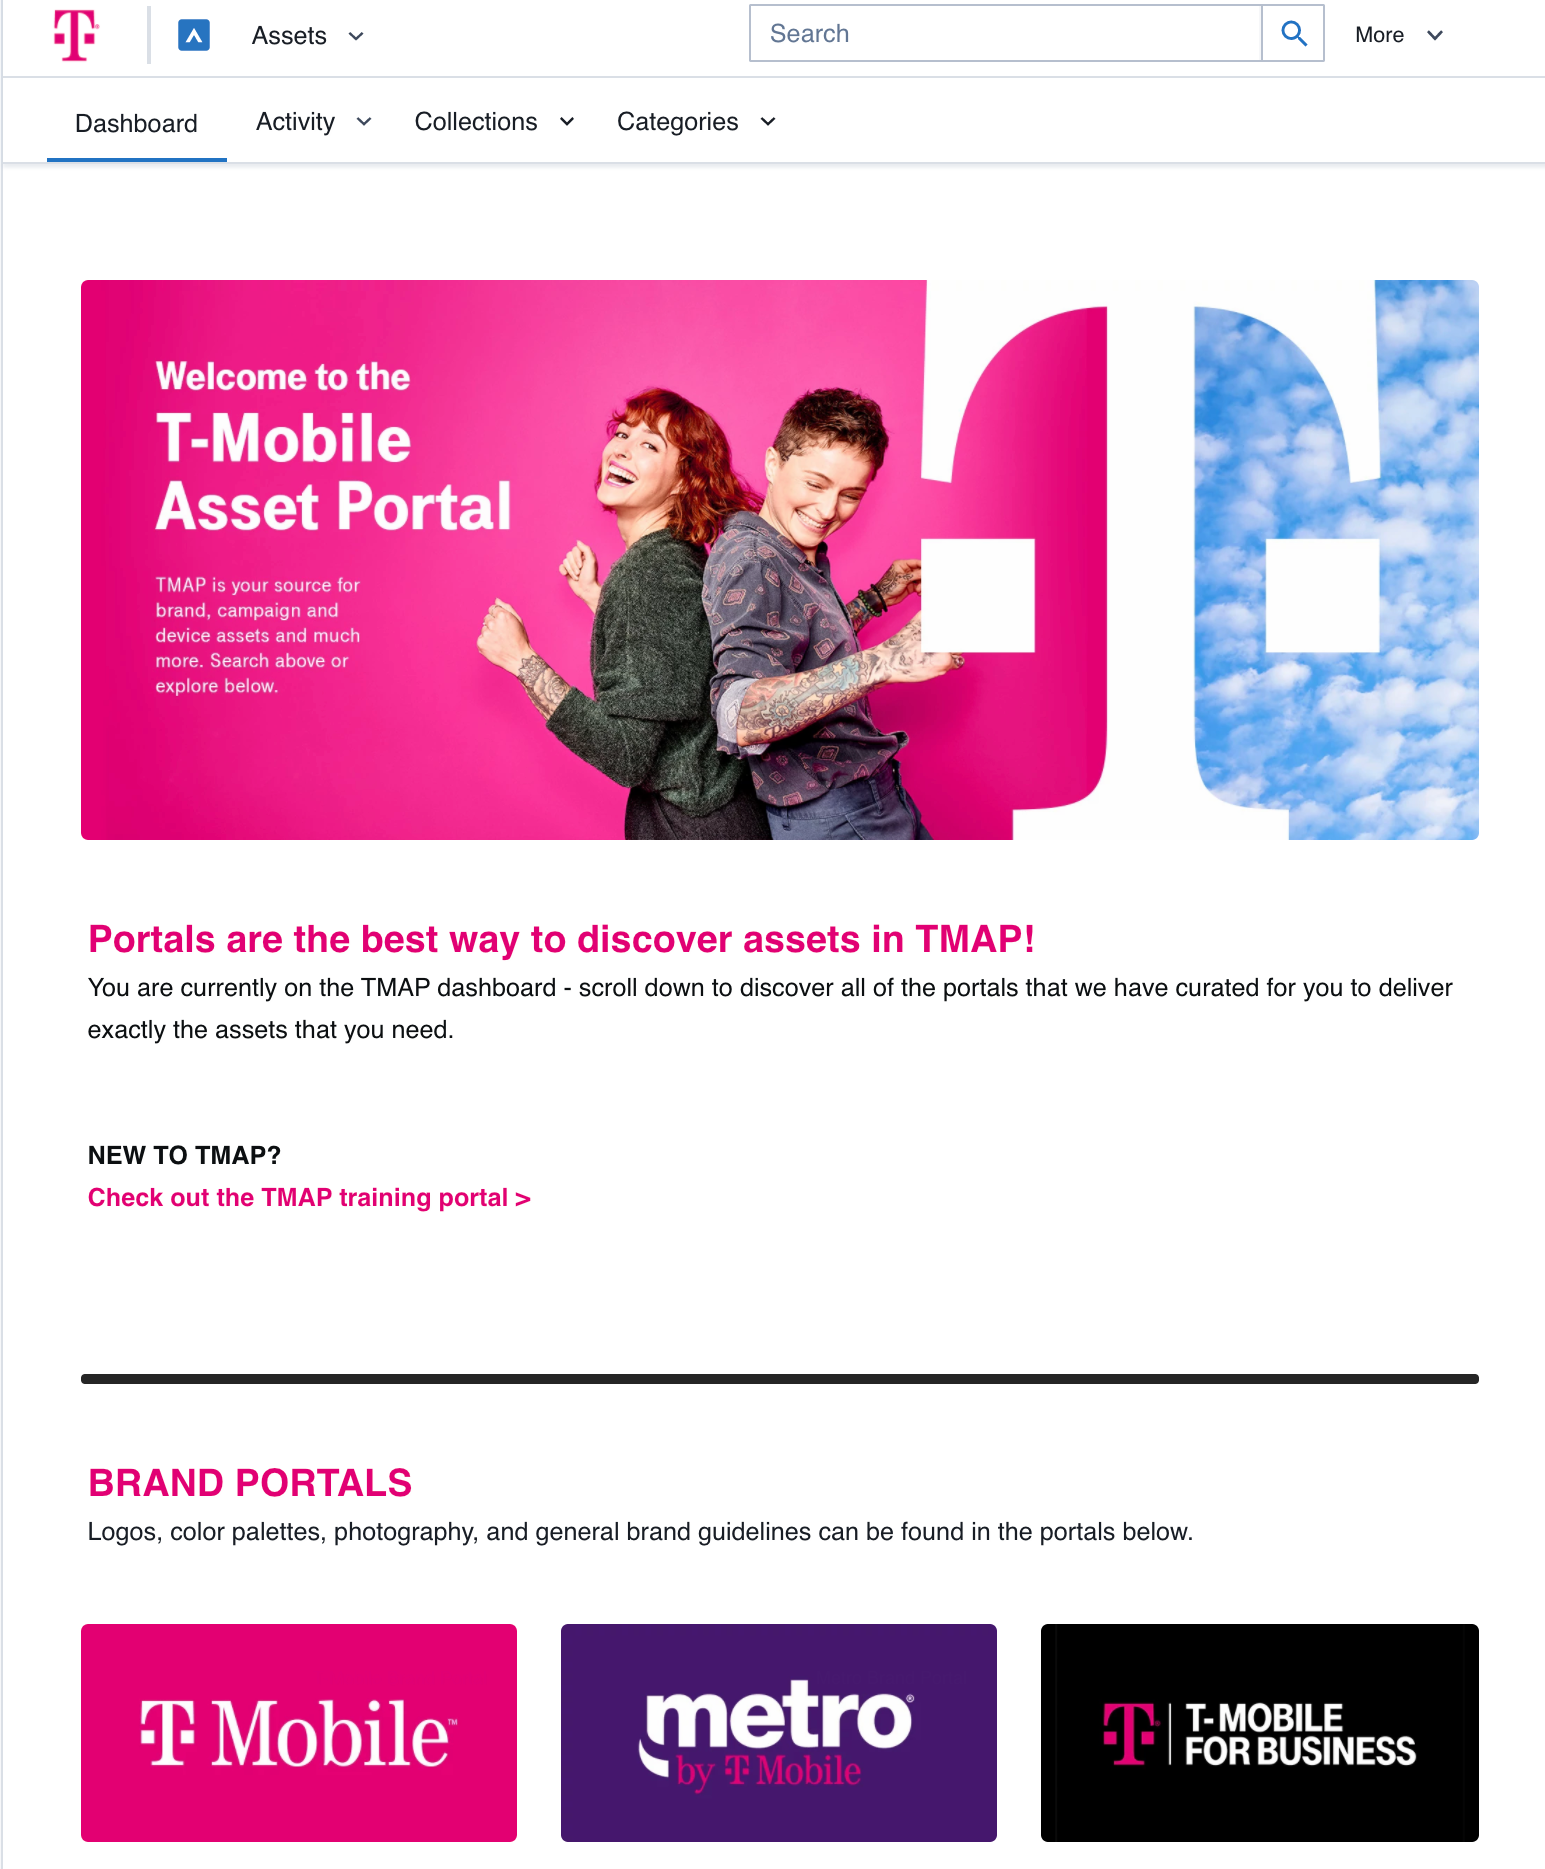 Screen capture of the T-Mobile Widen Collective dashboard. With a header image of two women back to back and smiling. Below is text giving information about the DAM site and image links to provide links for the company's brand portals.